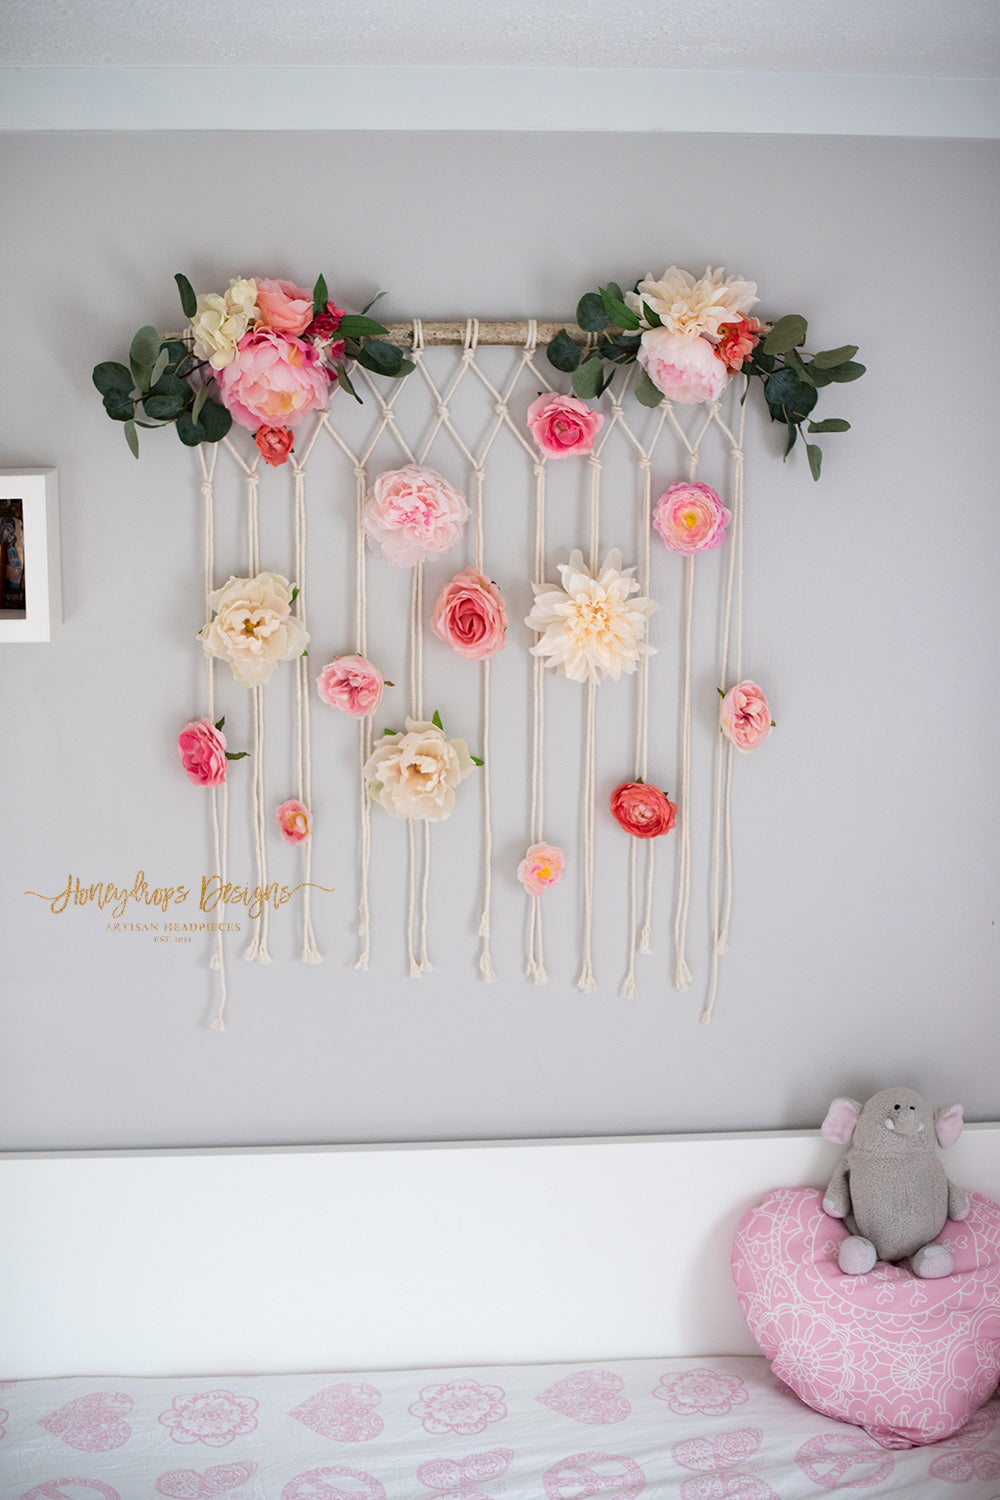 Macrame Flower Wall Hanging Baby Room Baby Girl Nursery Wall Decor – Honeydrops Designs